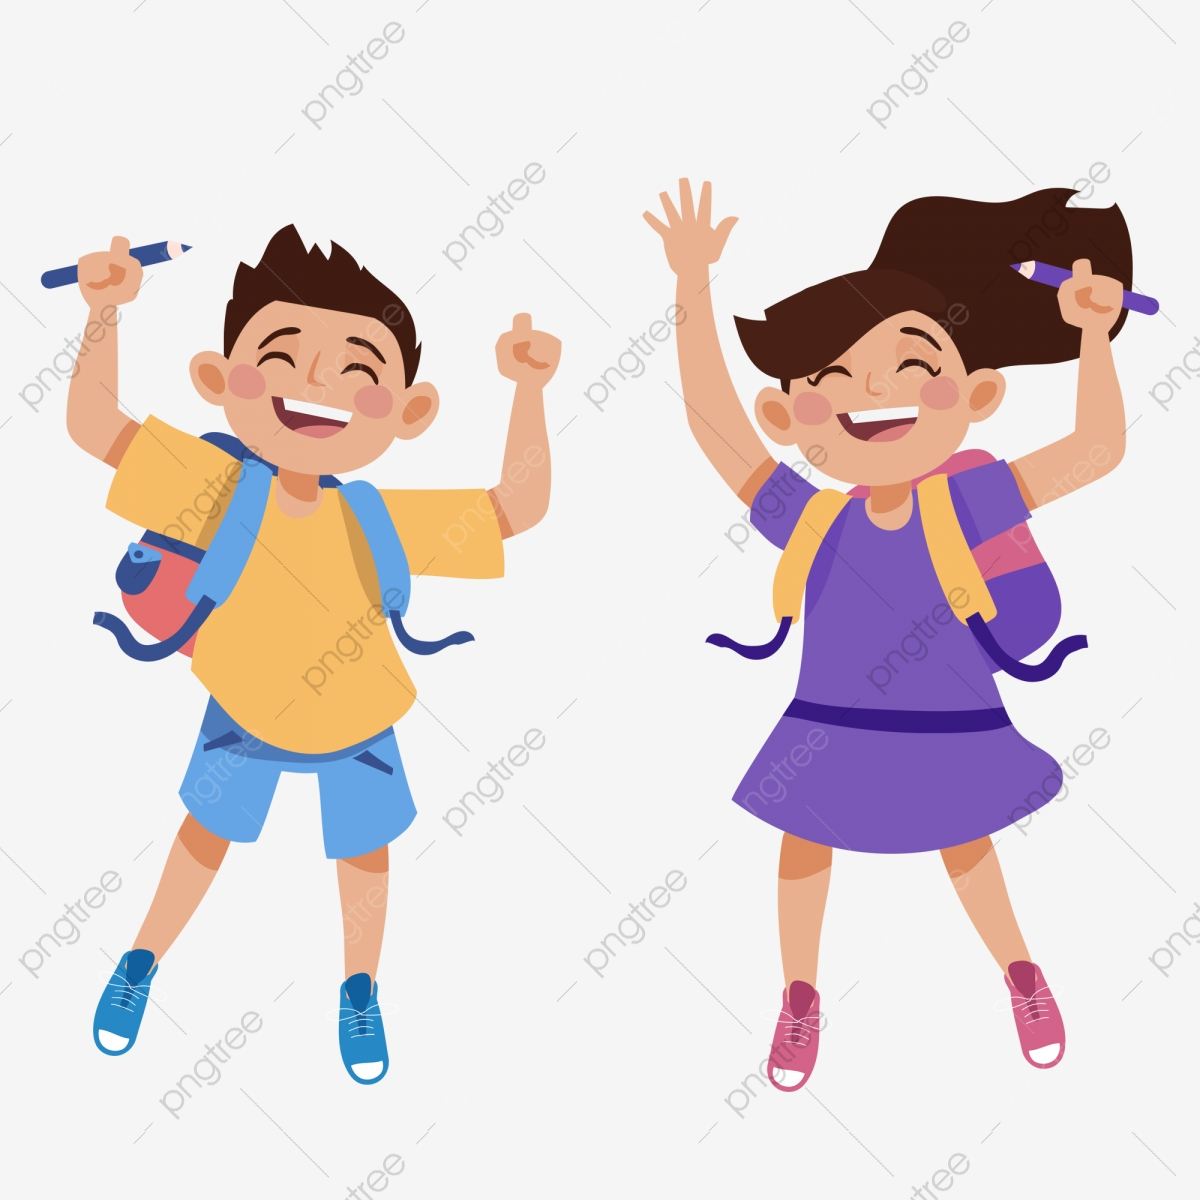 Excited clipart started. Happy to go school